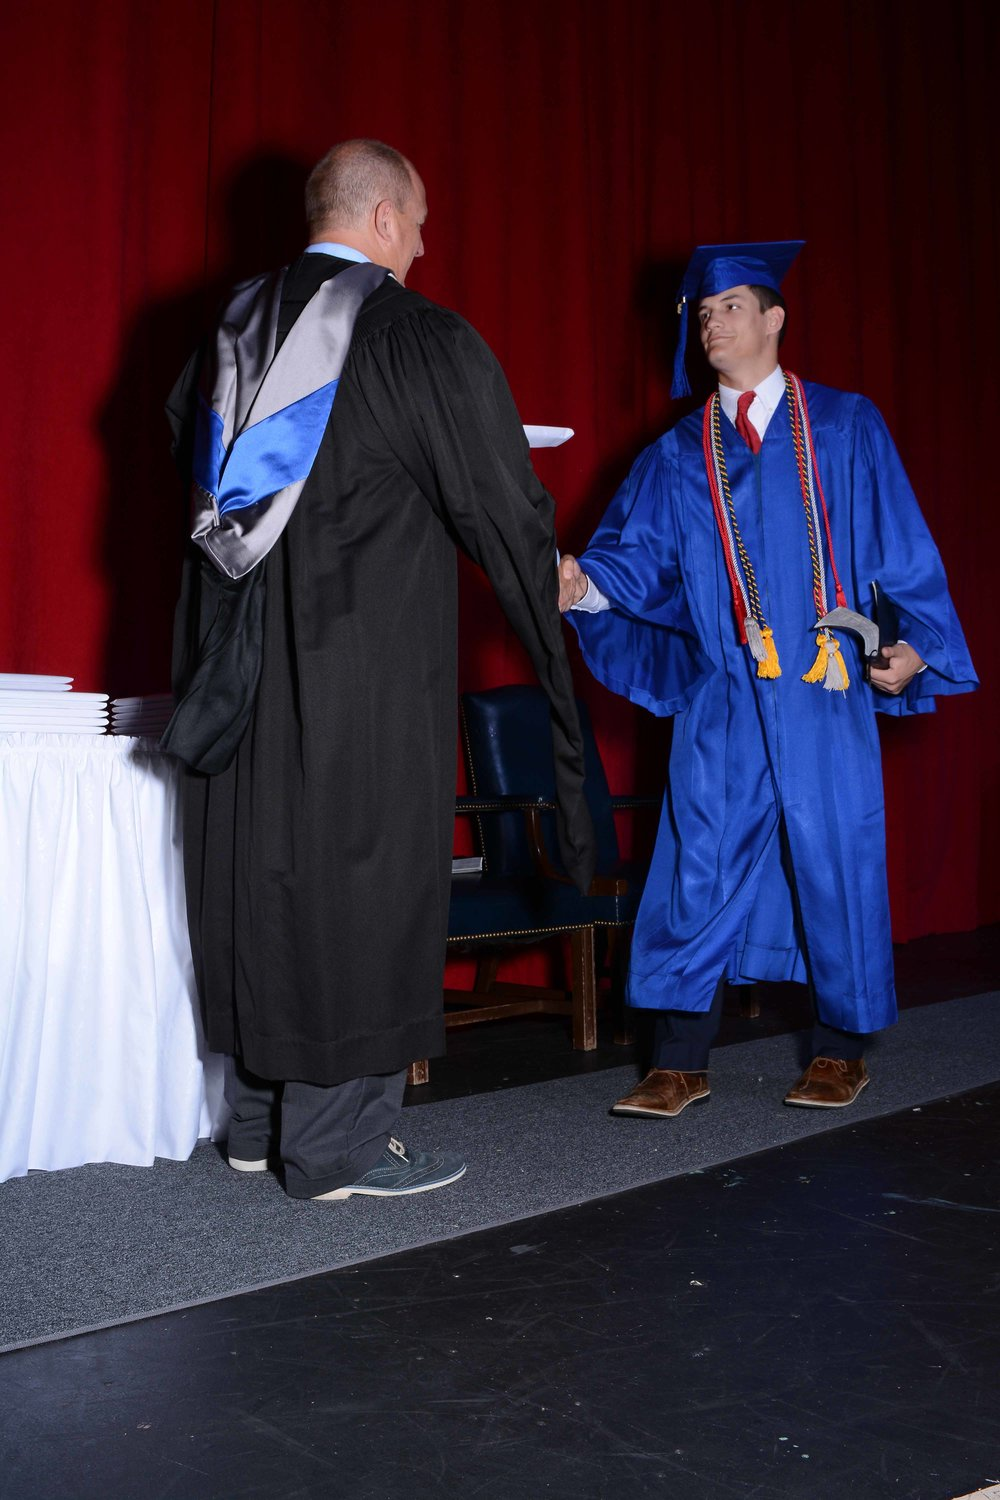 May14 Commencement132.jpg